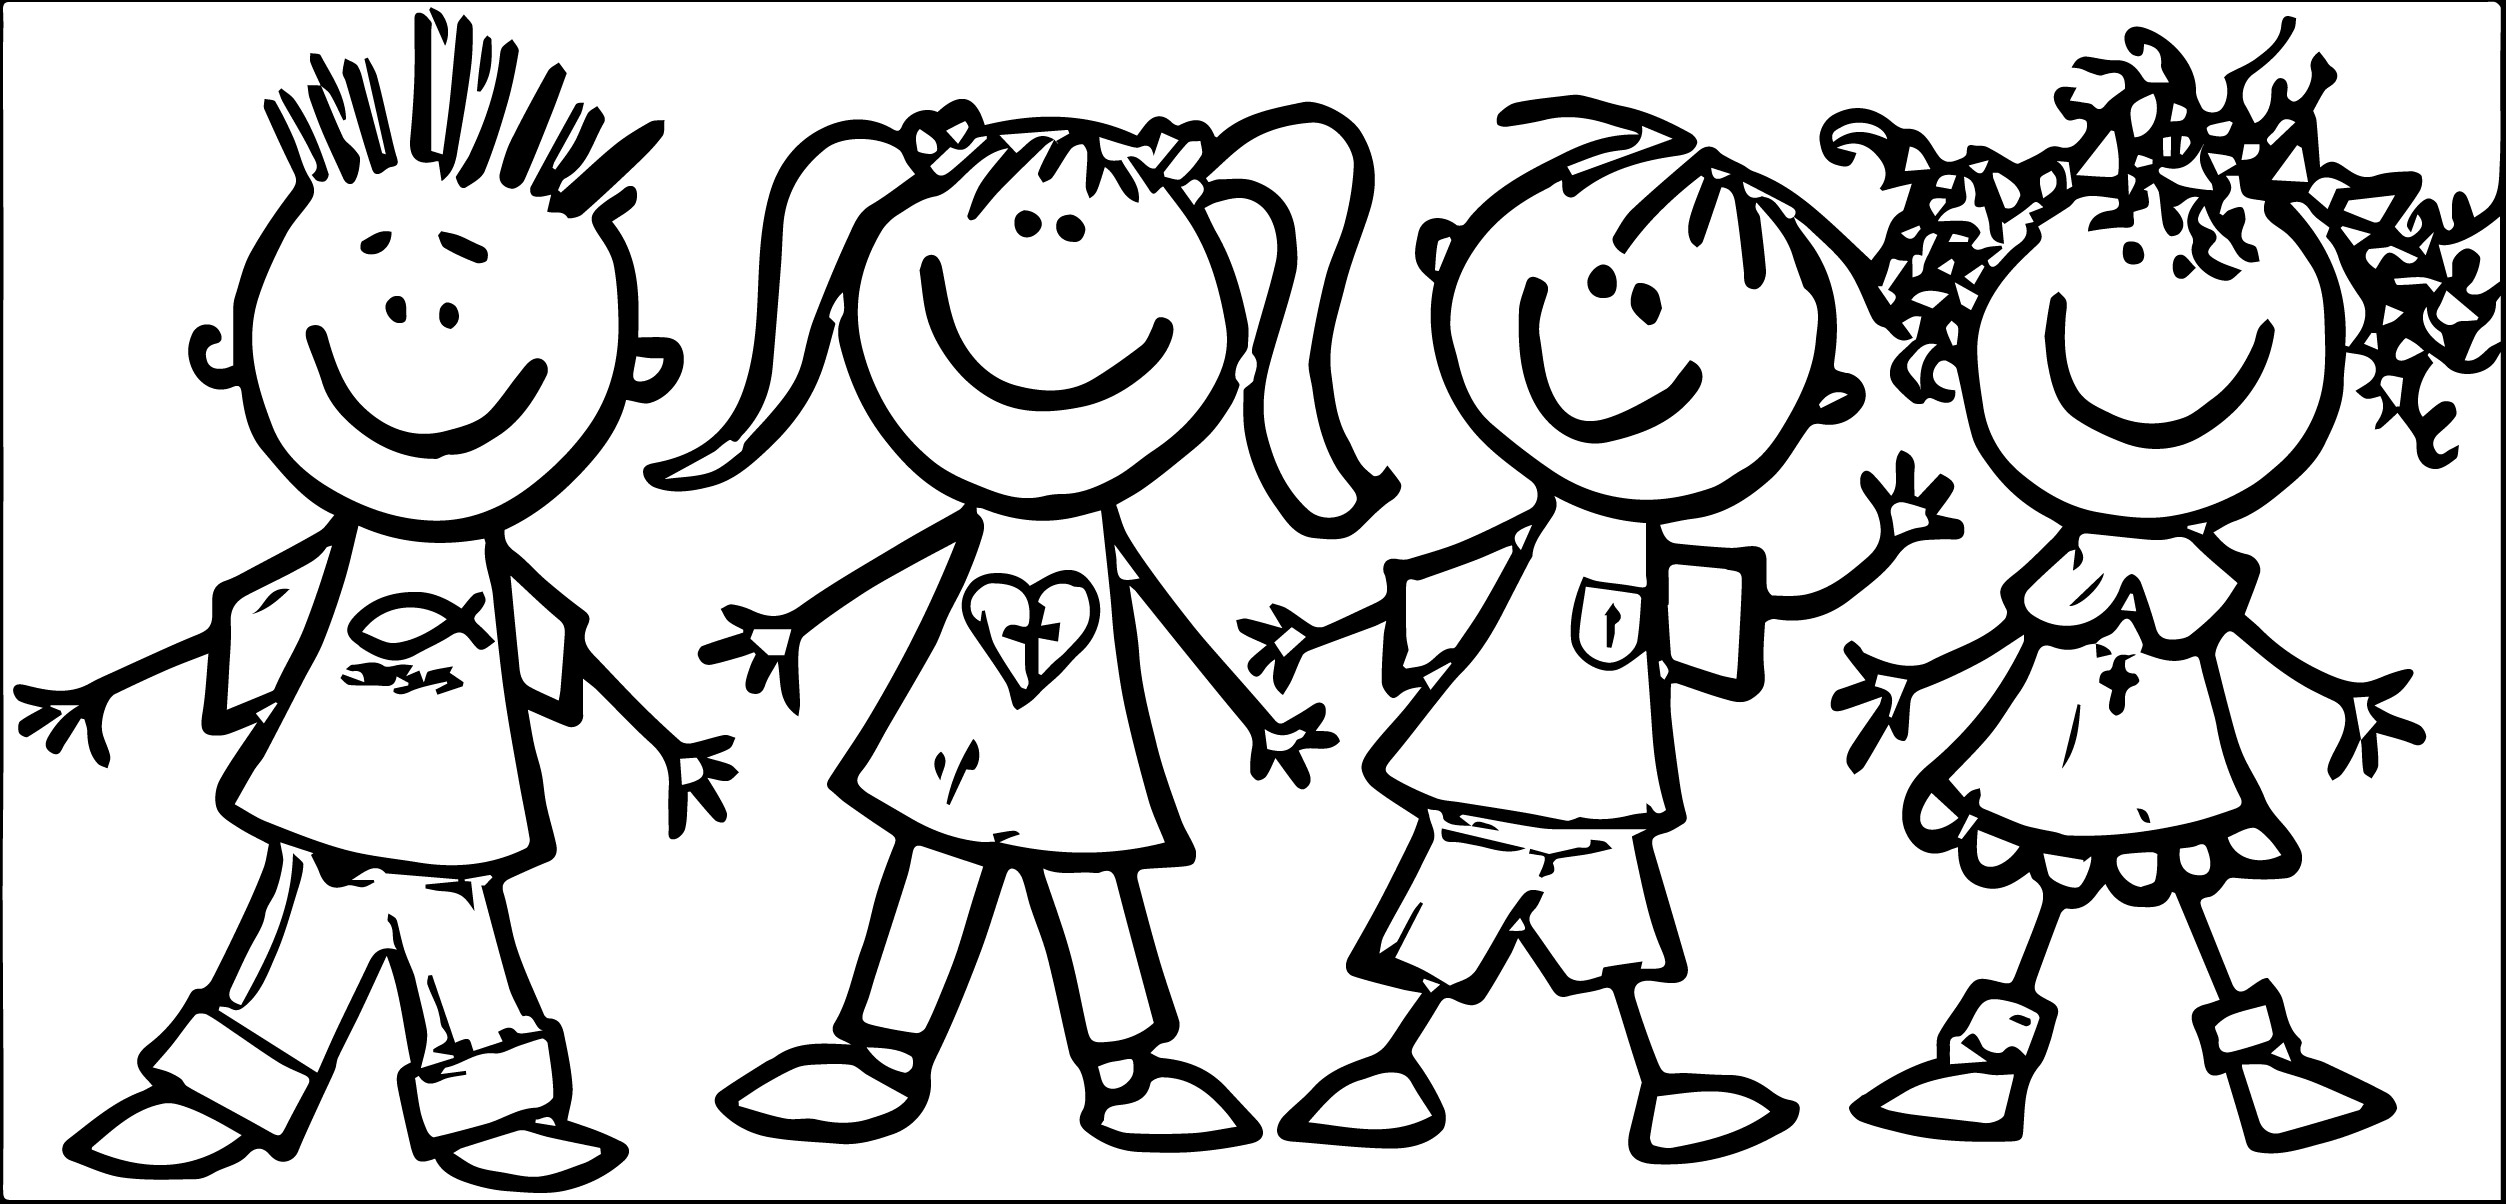 Preschool clip art kids we coloring page wecoloringpage